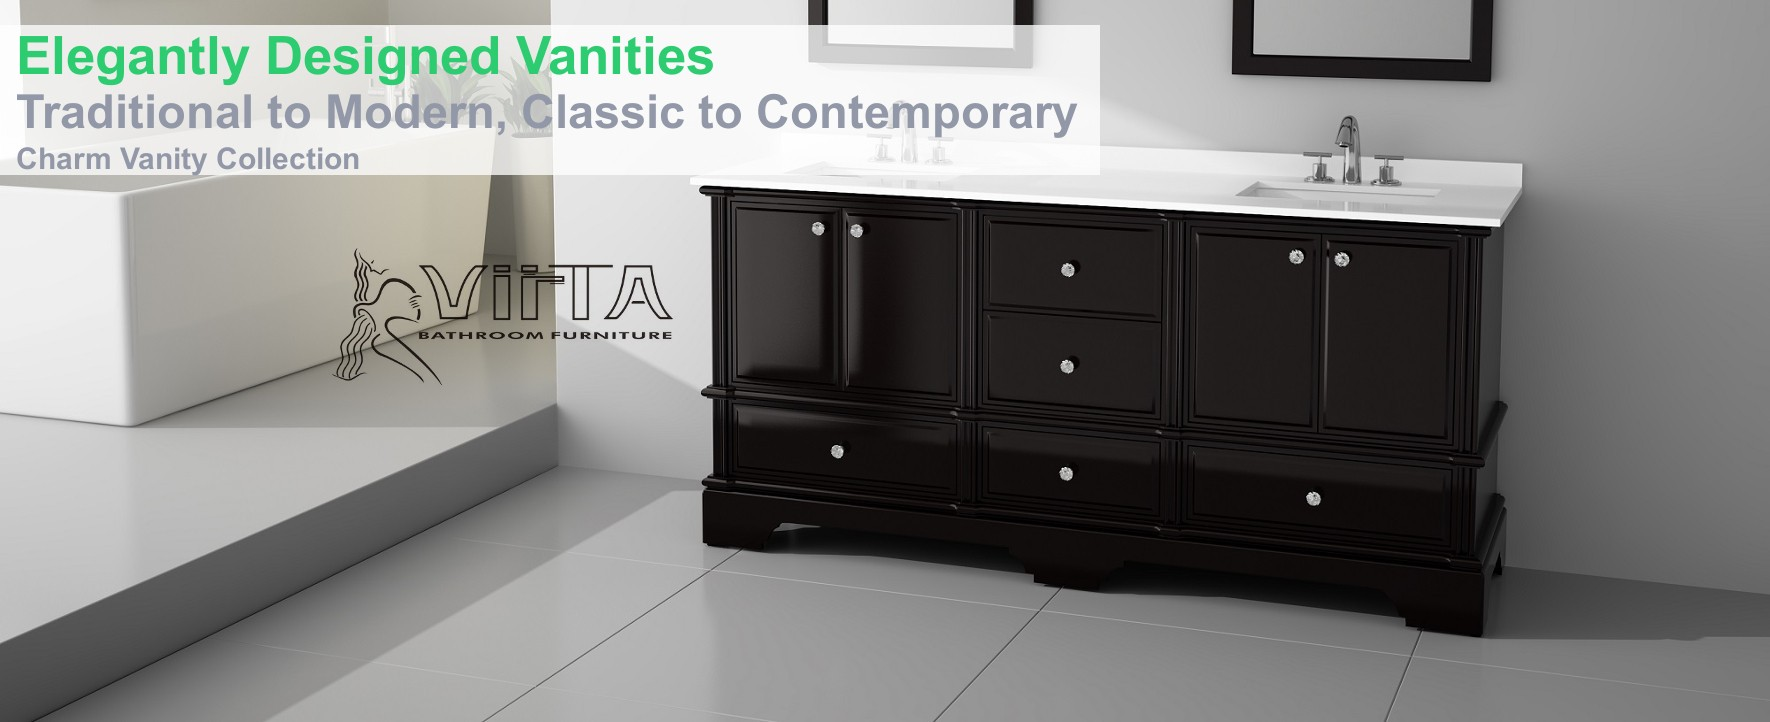 Elegantly Designed Vanities